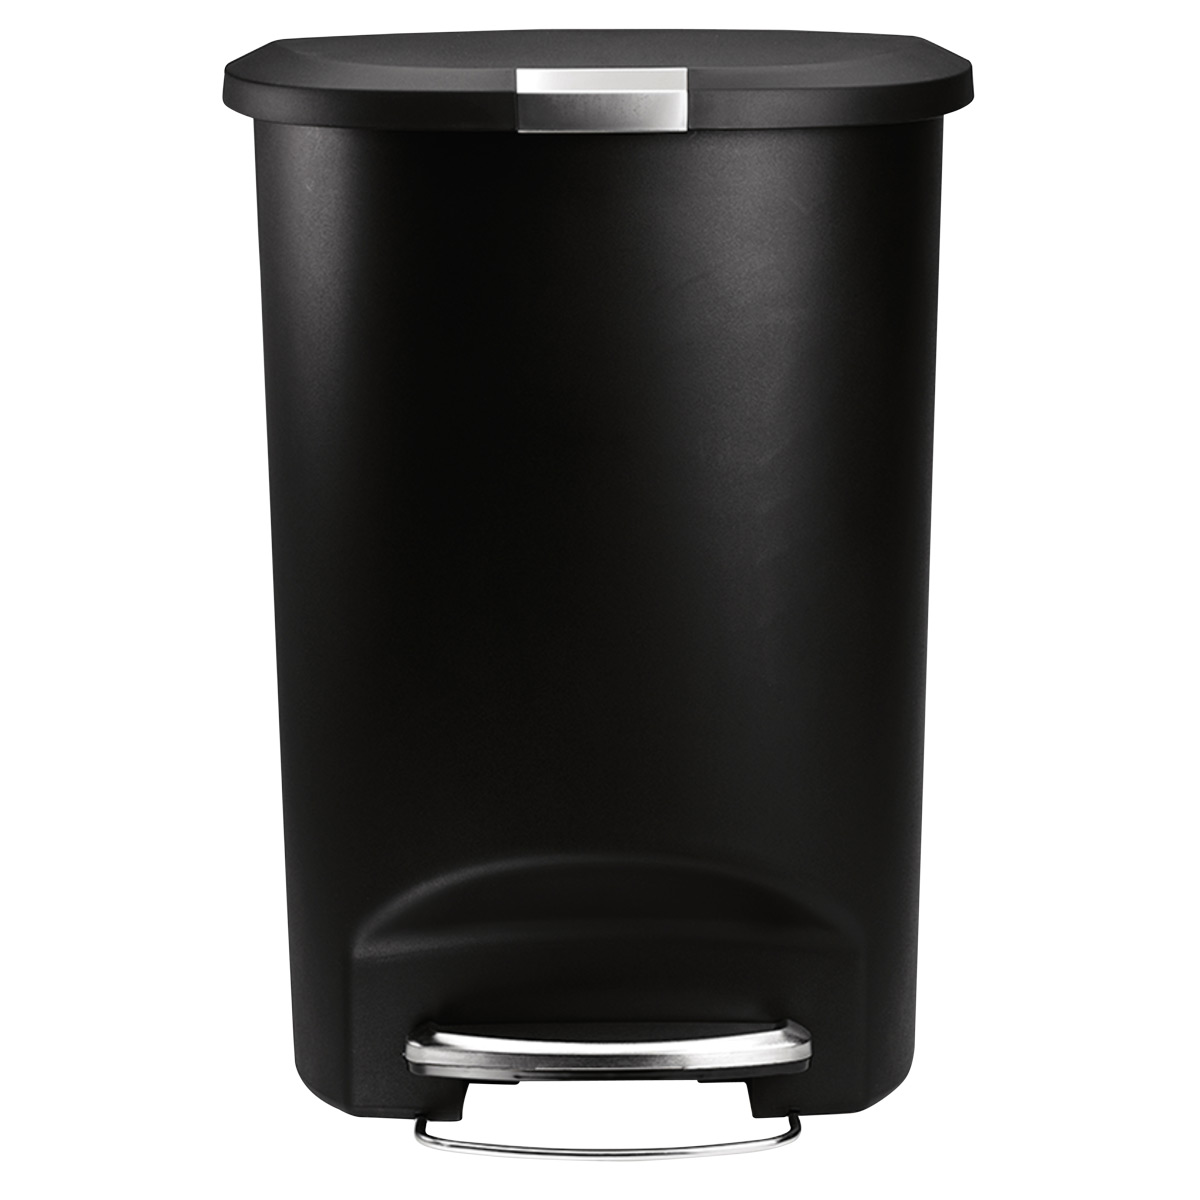 simplehuman Black 13 gal. Semi-Round Plastic Step Trash Can